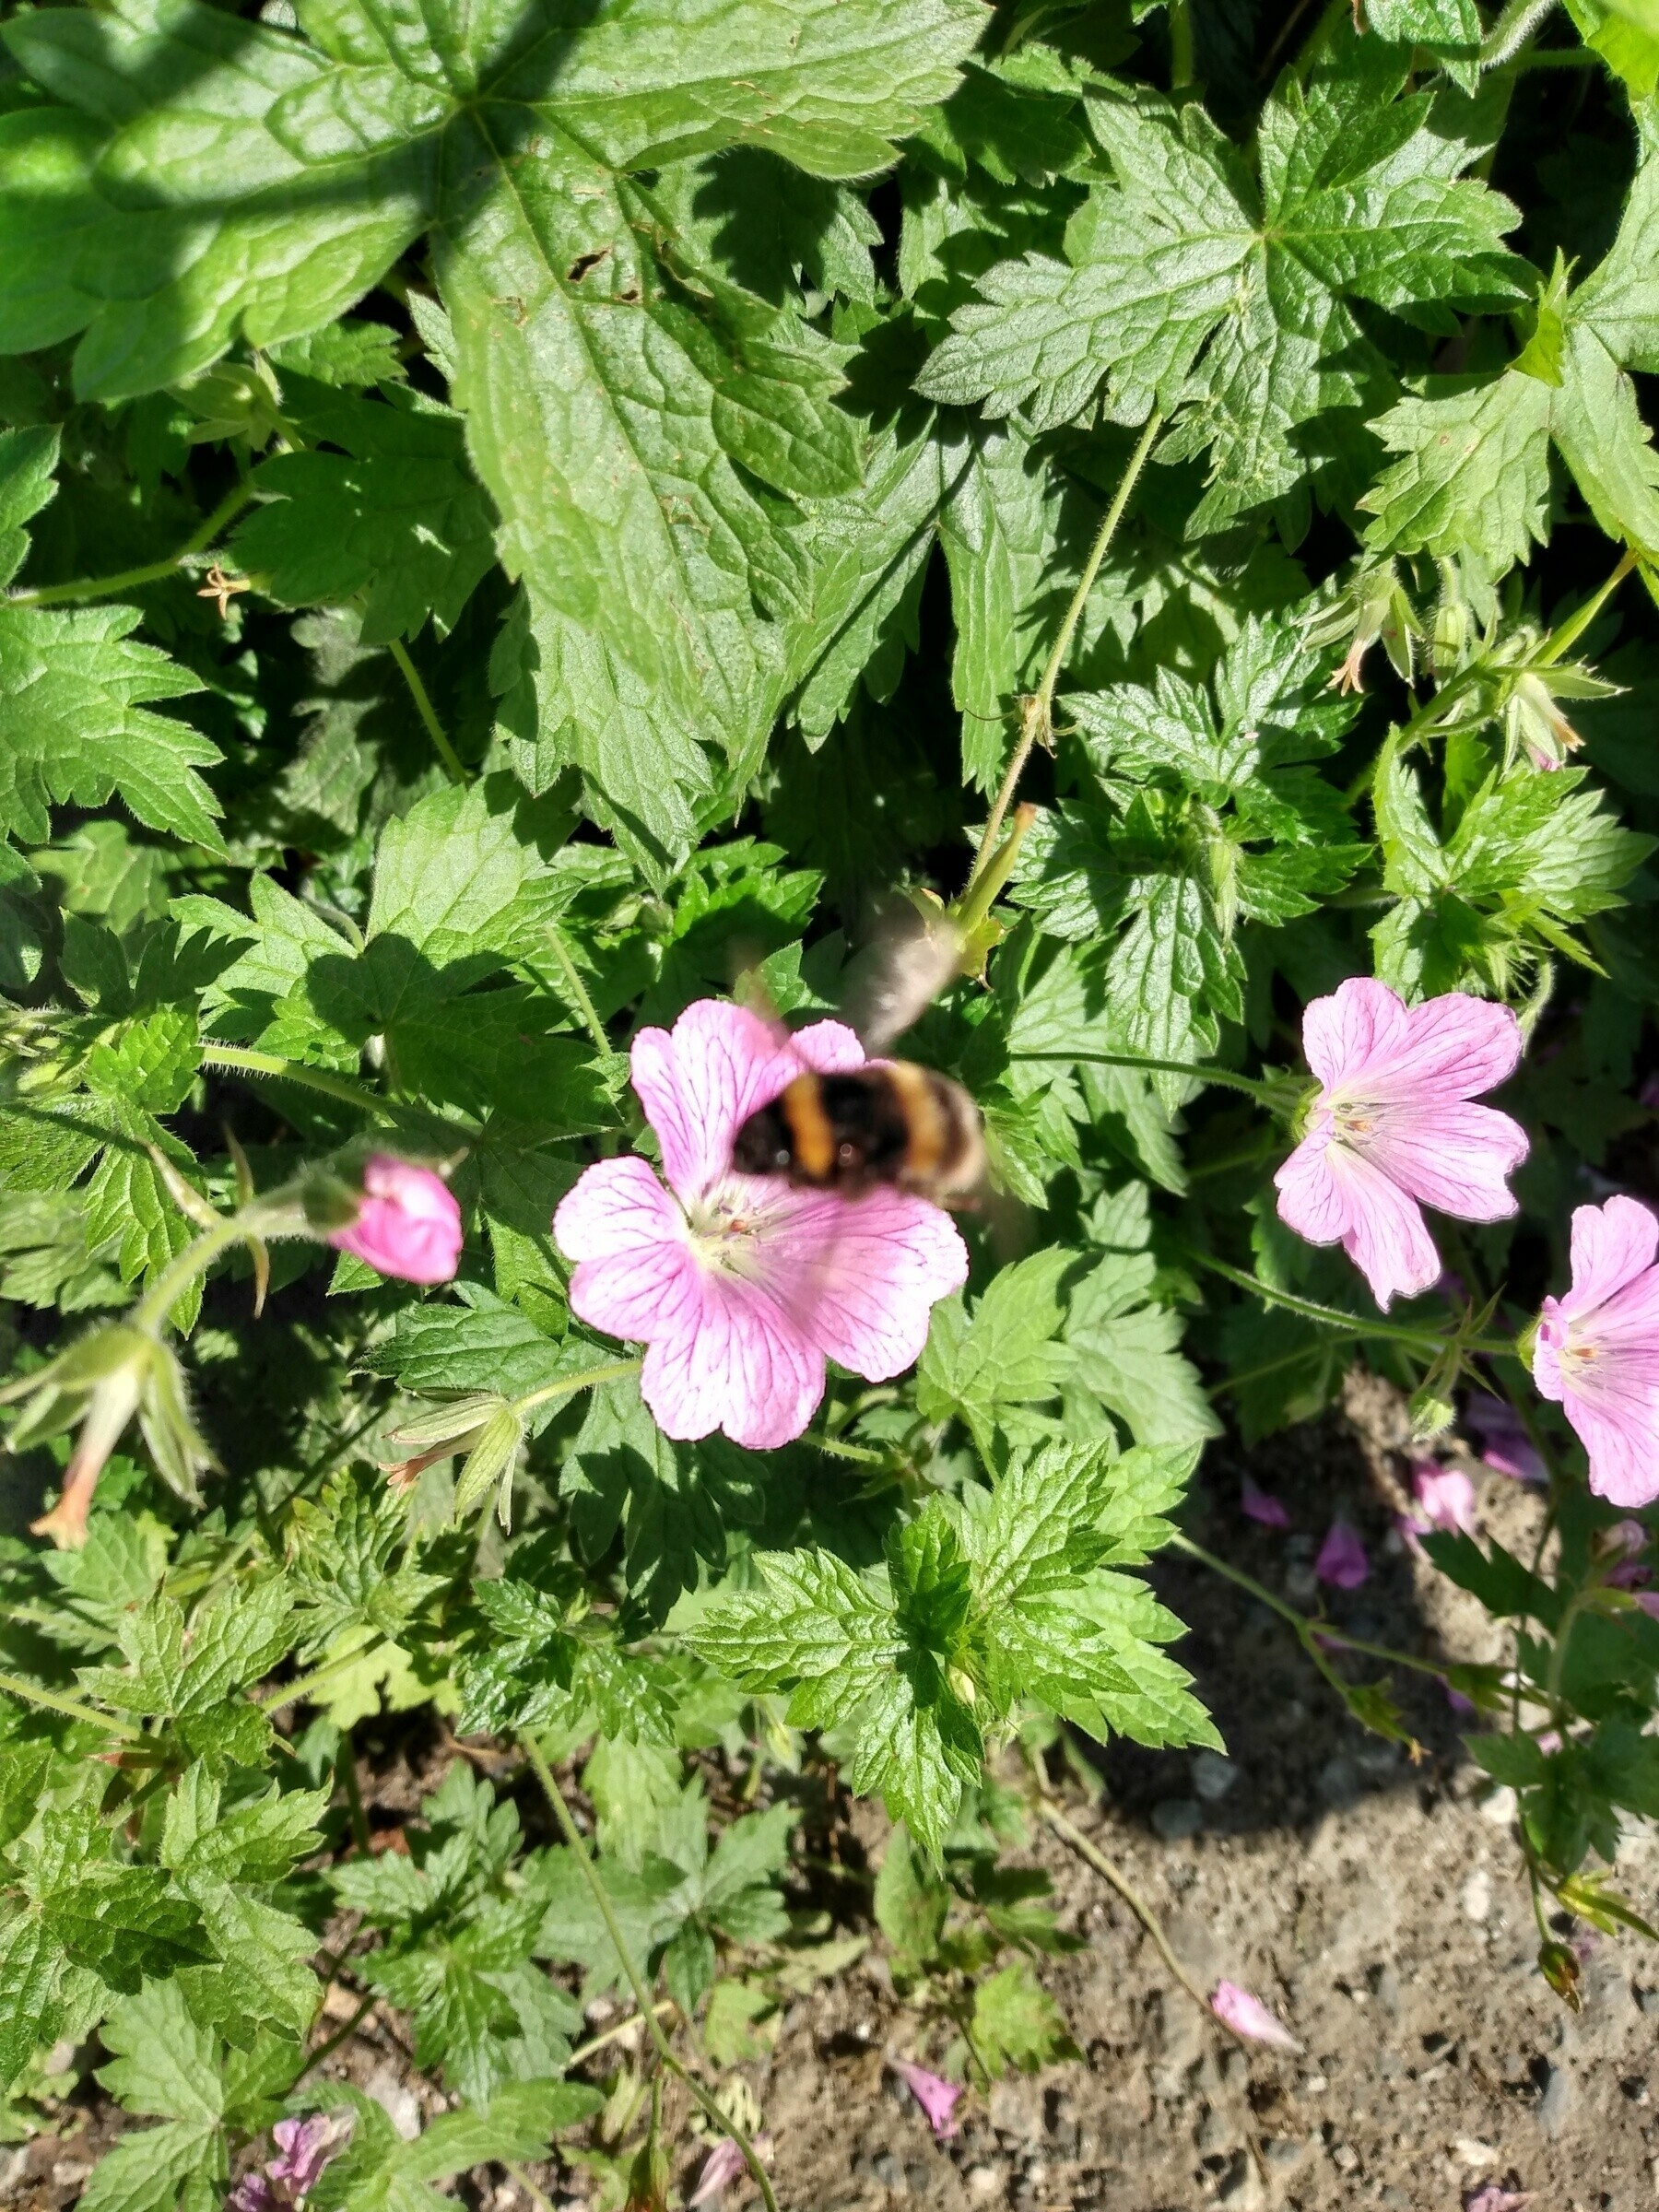 a bumblebee on a pink flower